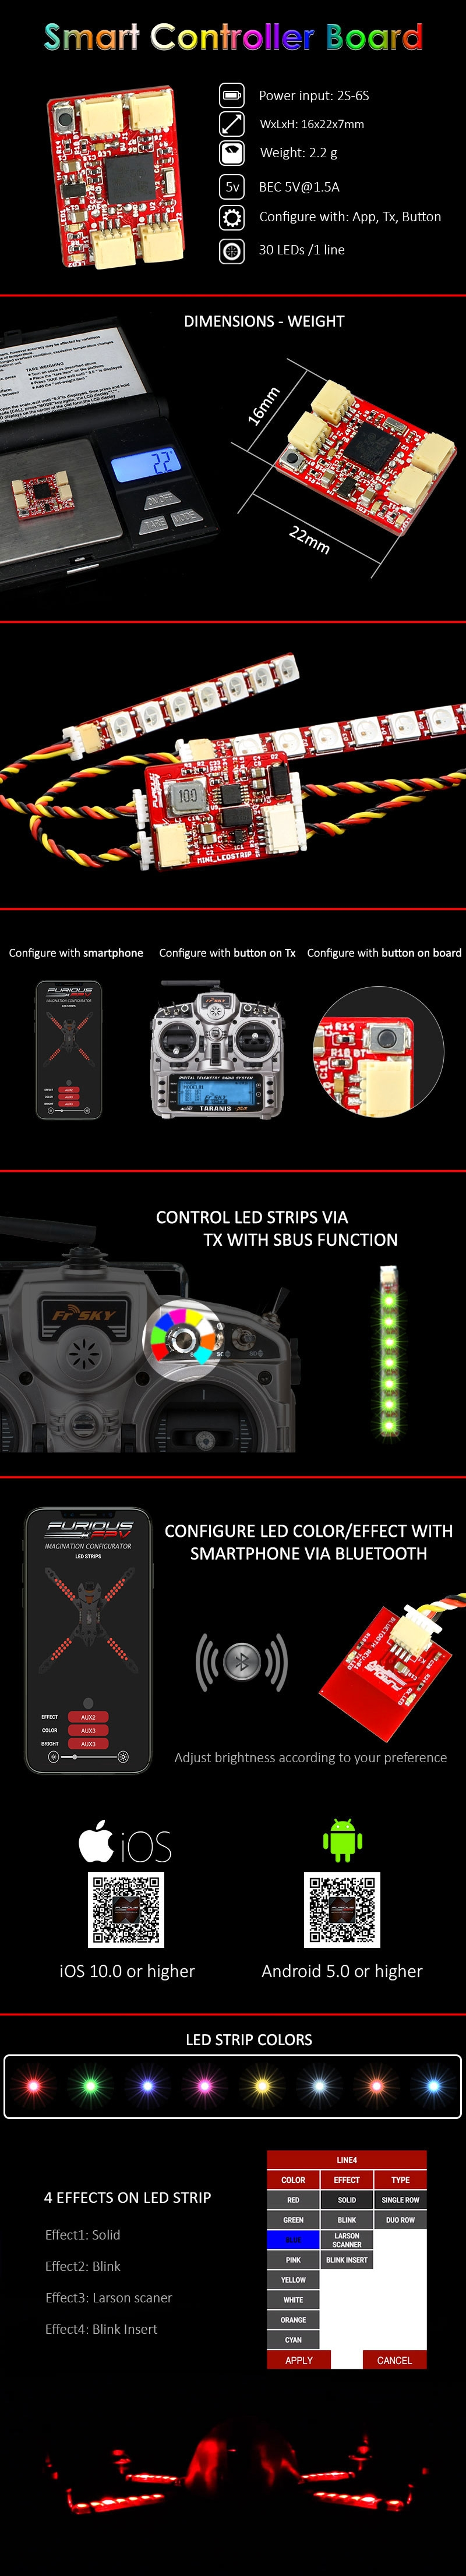 FuriousFPV LED Strip Smart Controller Board With Bluetooth Module For RC Drone